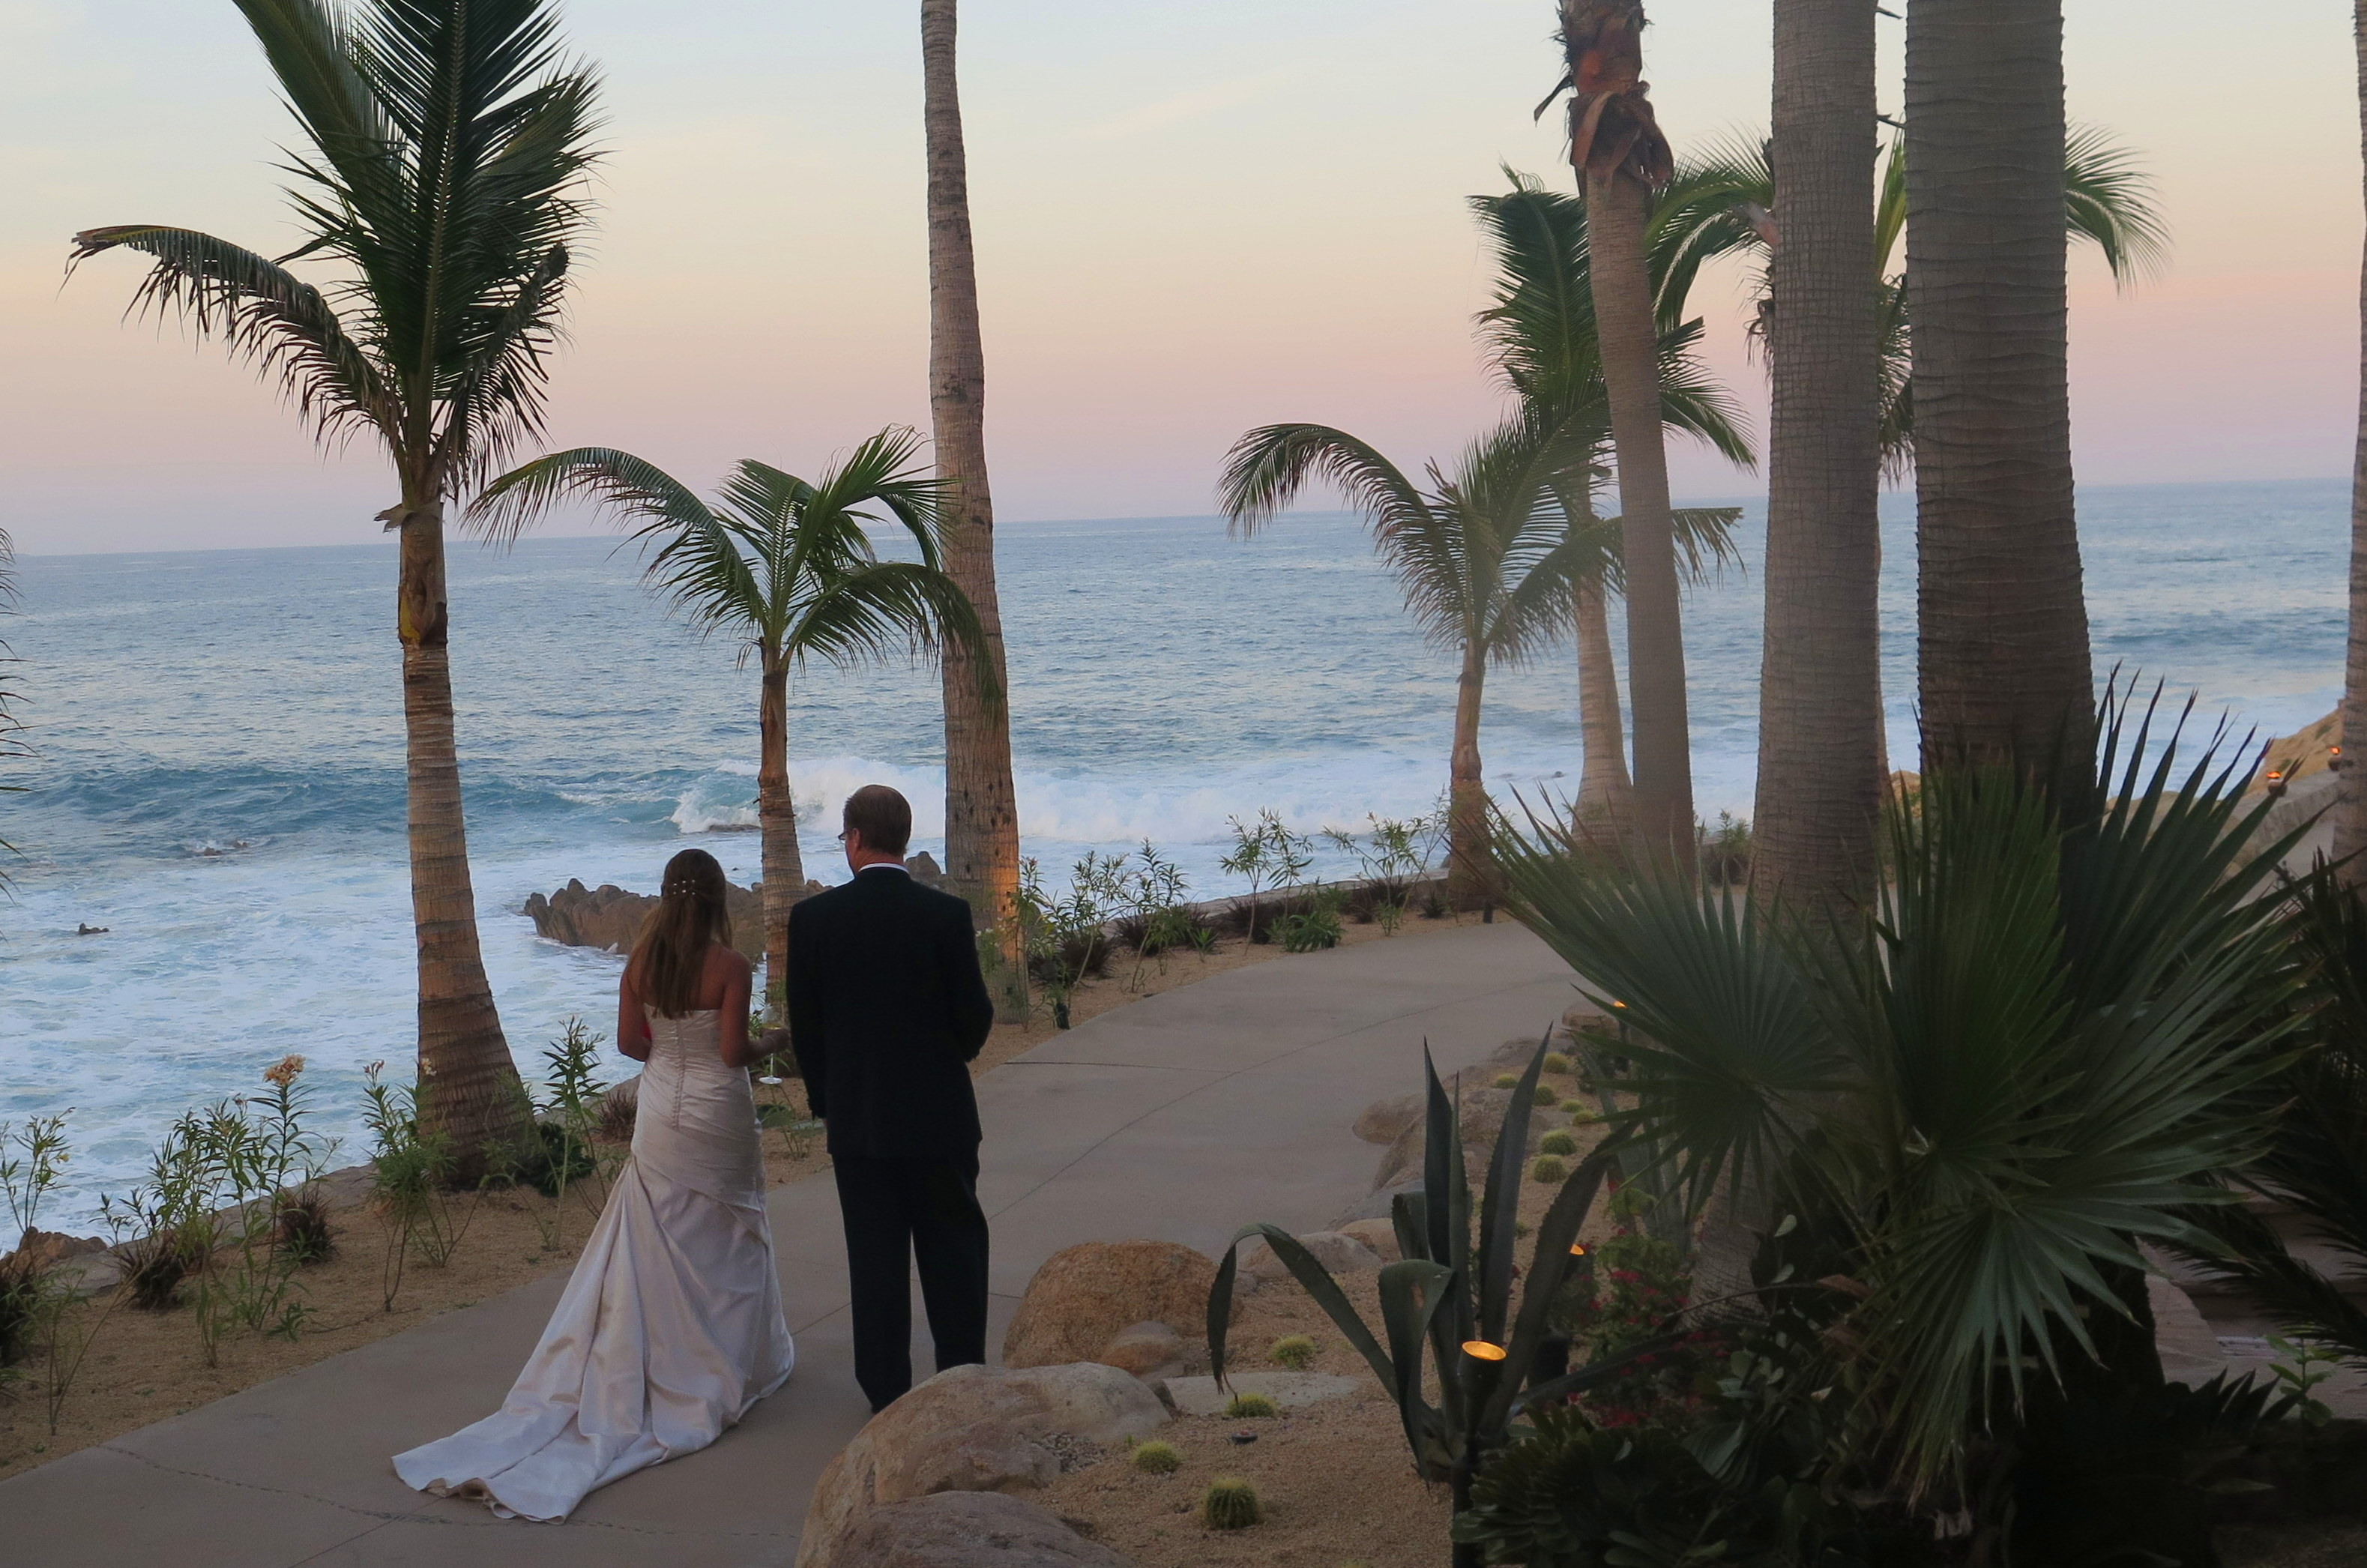 Weddings are, understandably, a huge part of the attraction at One&Only Palmilla. It's romance with a capital R.